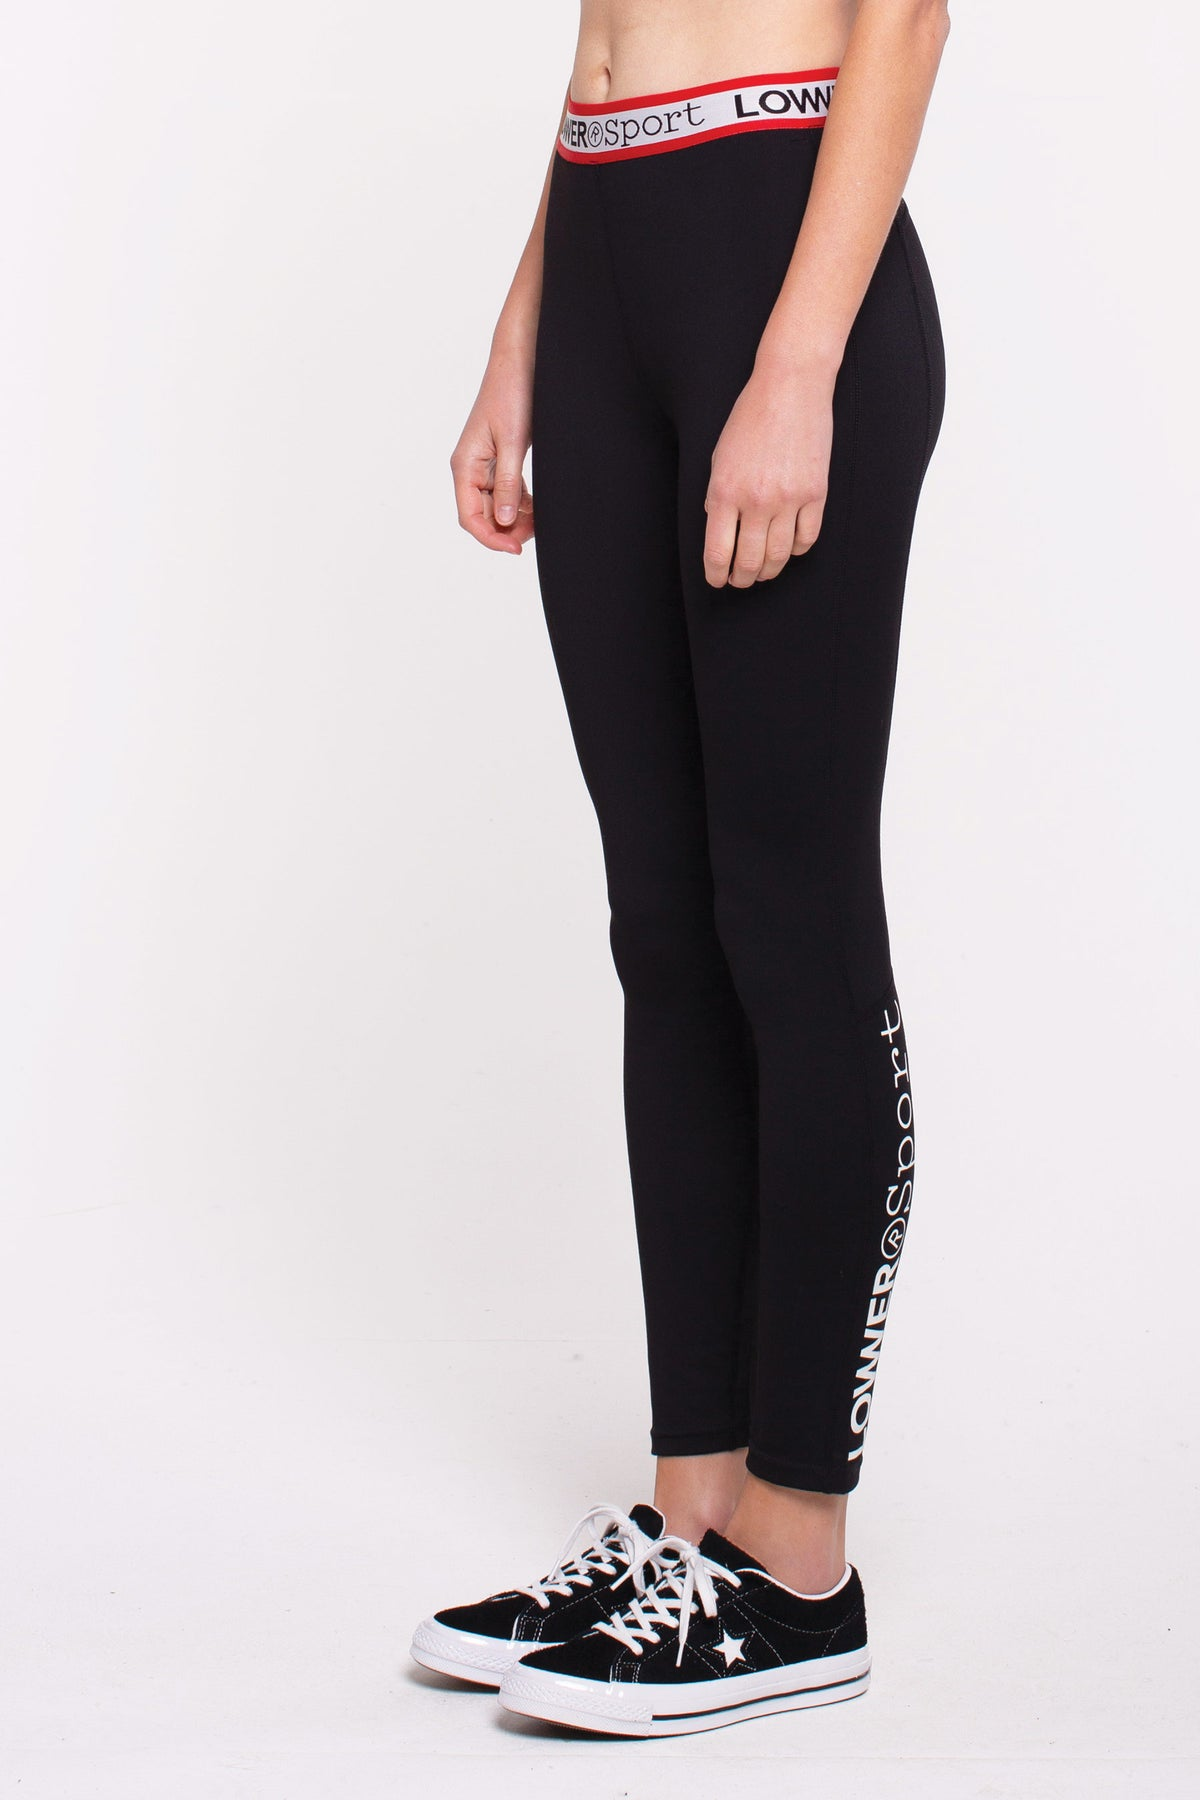 Sprint Tights - Black